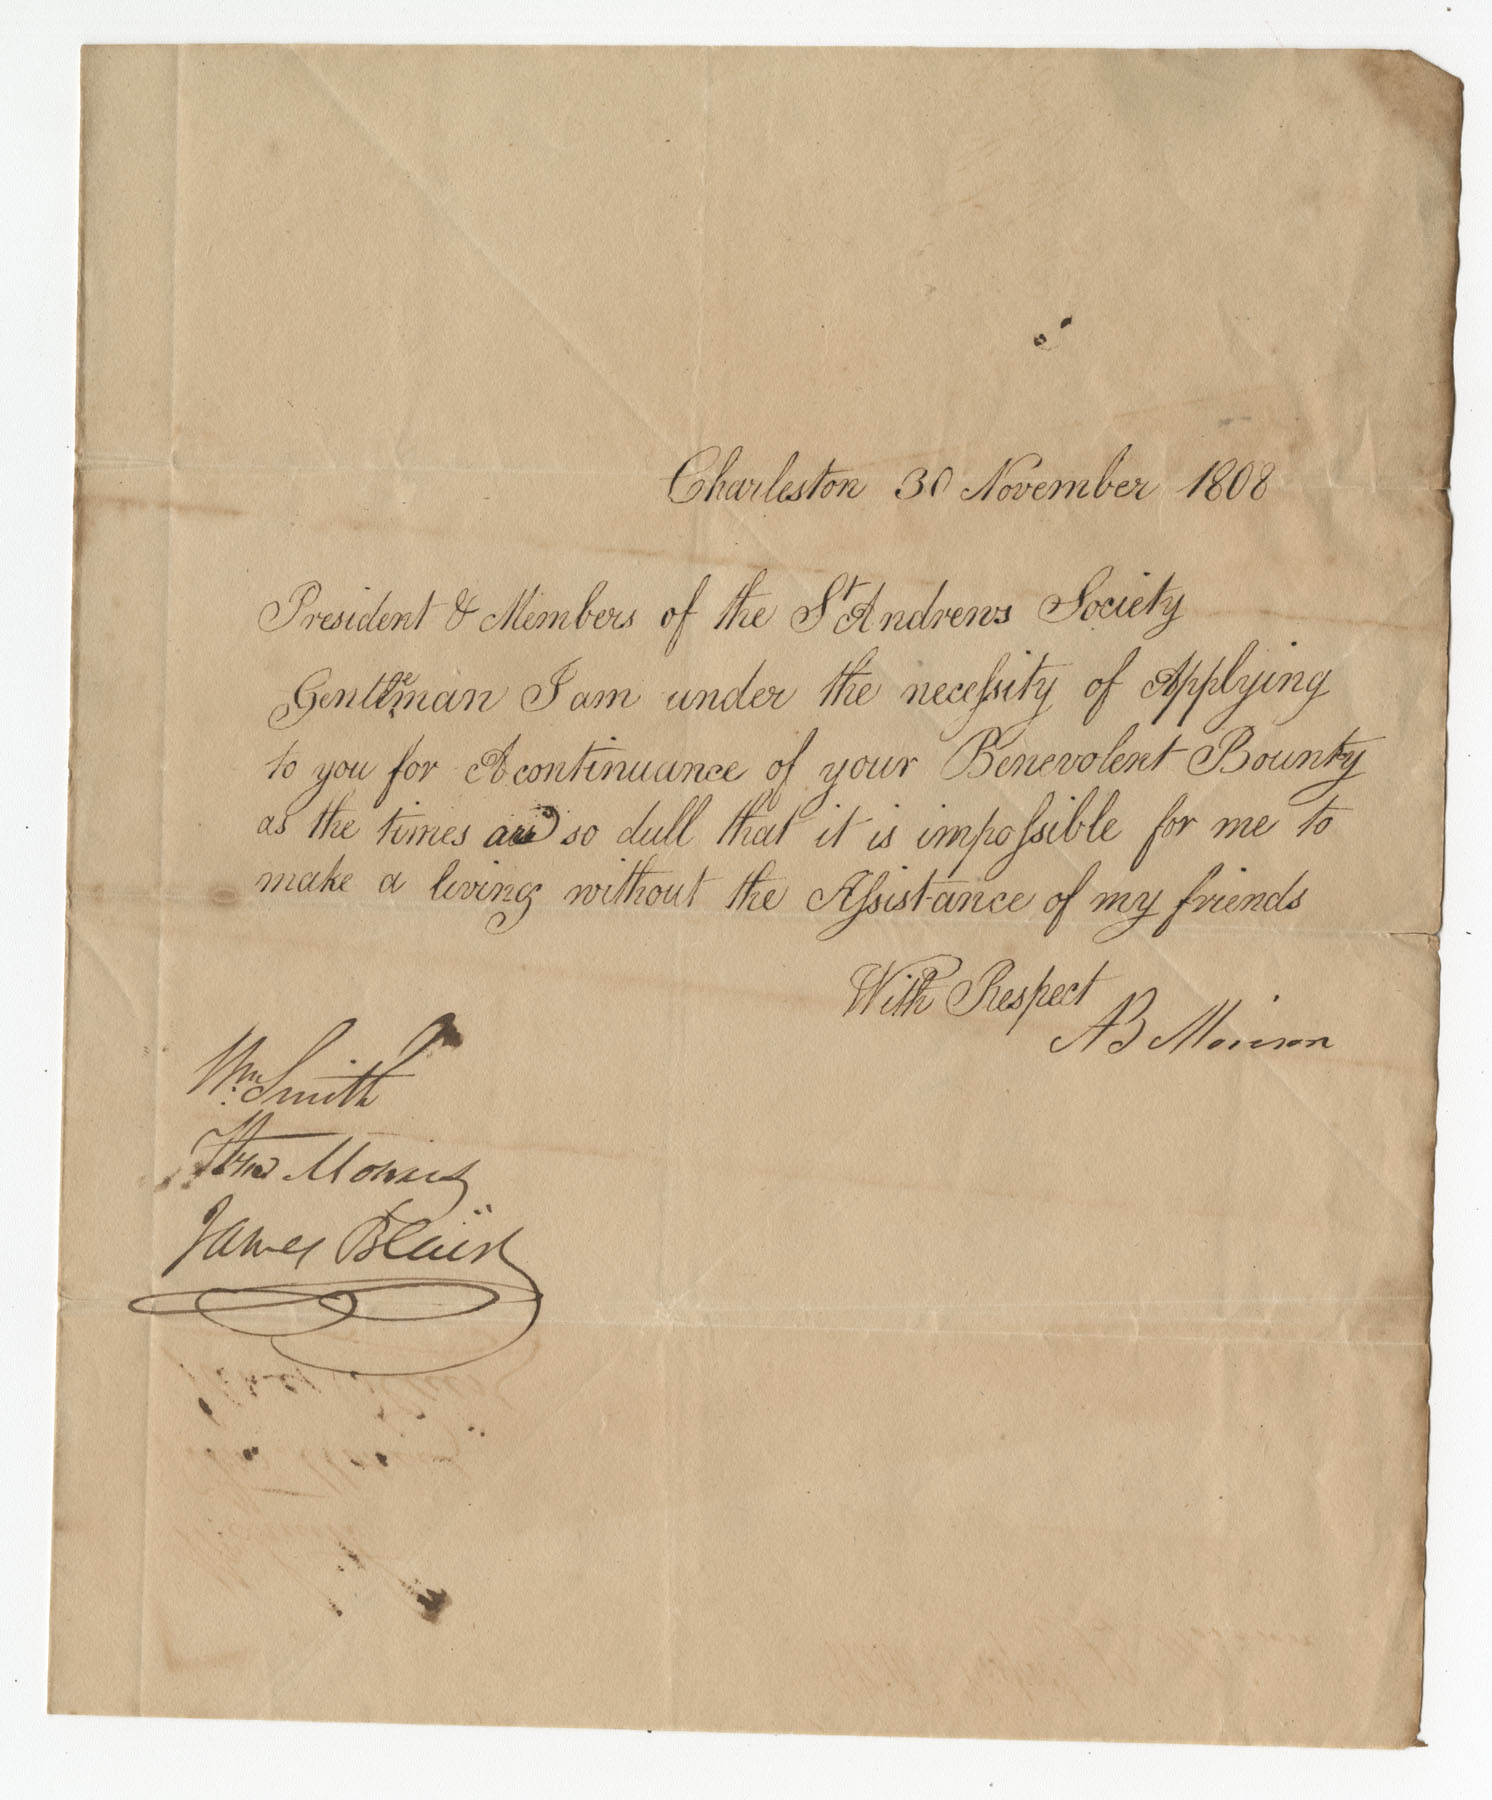 Petition from A. Morrison to the St. Andrew's Society